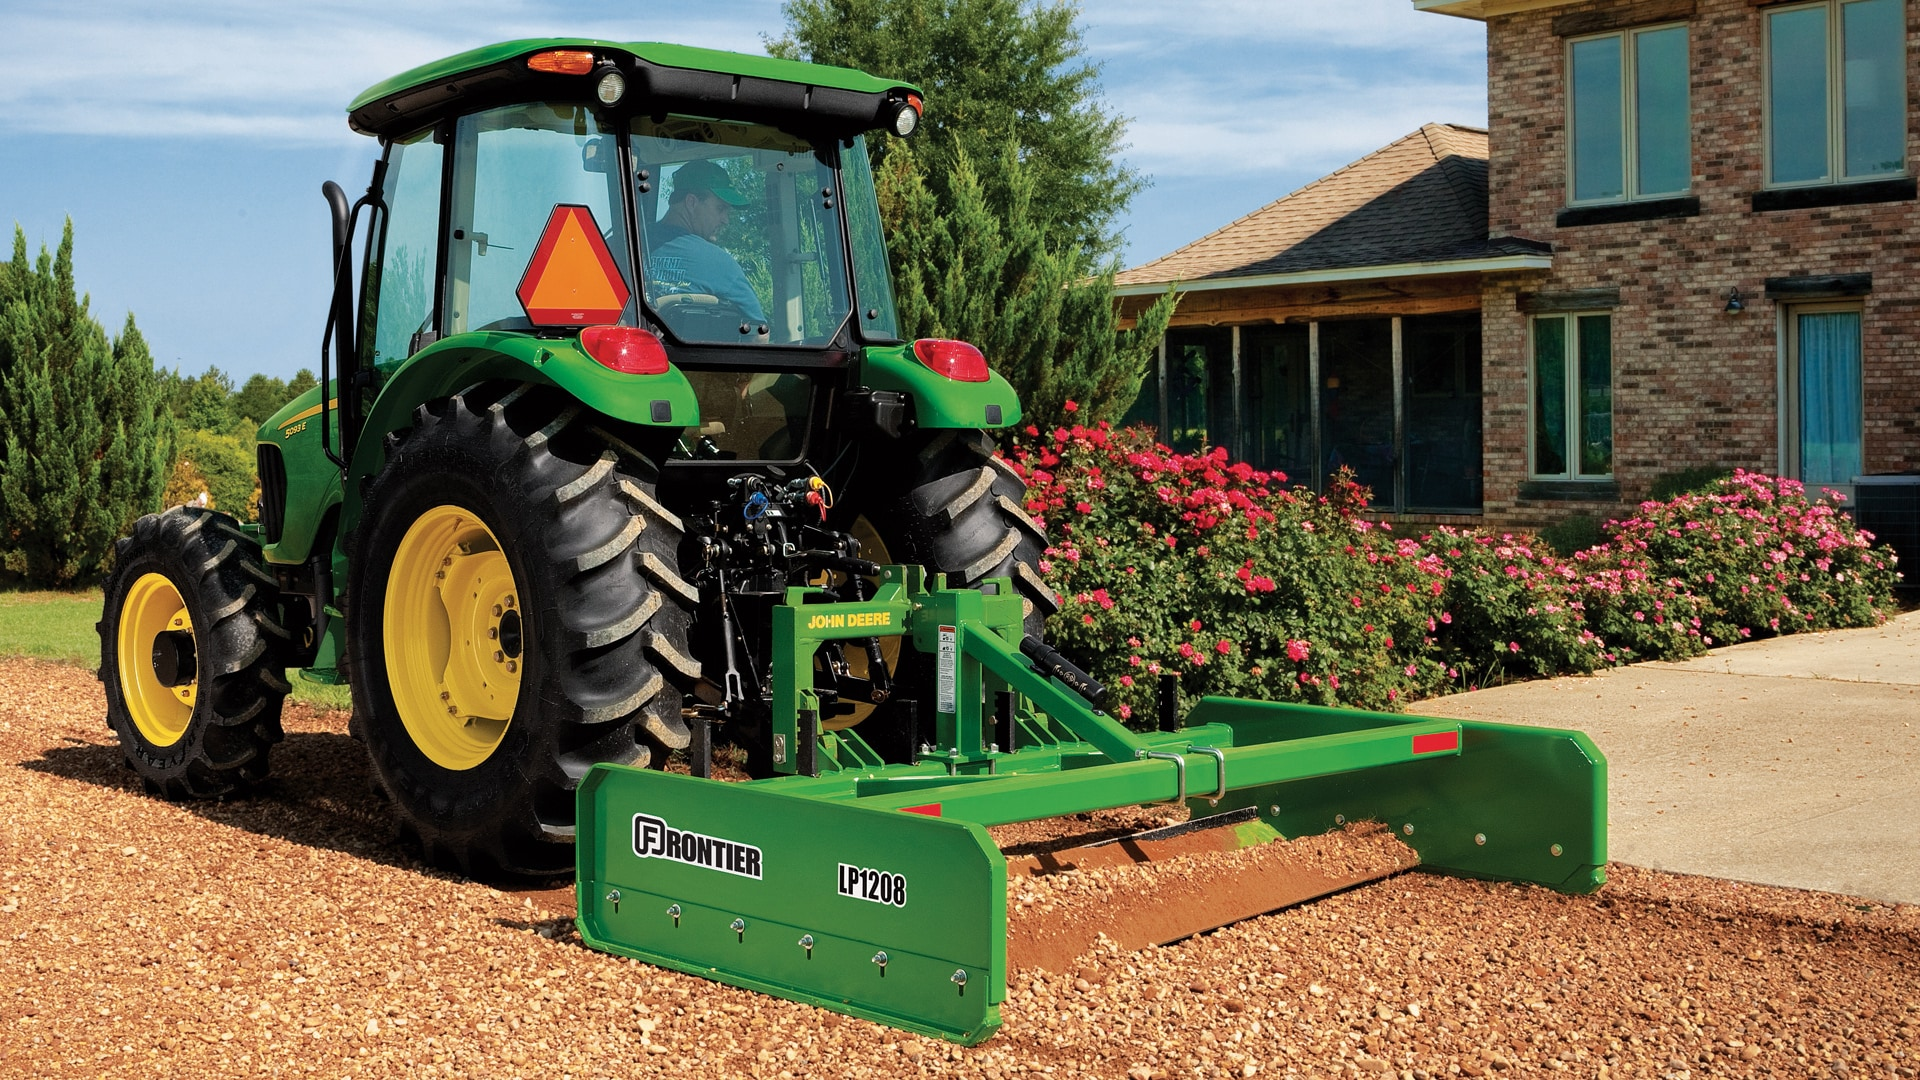 Frontier™ Landscape Equipment | John Deere US